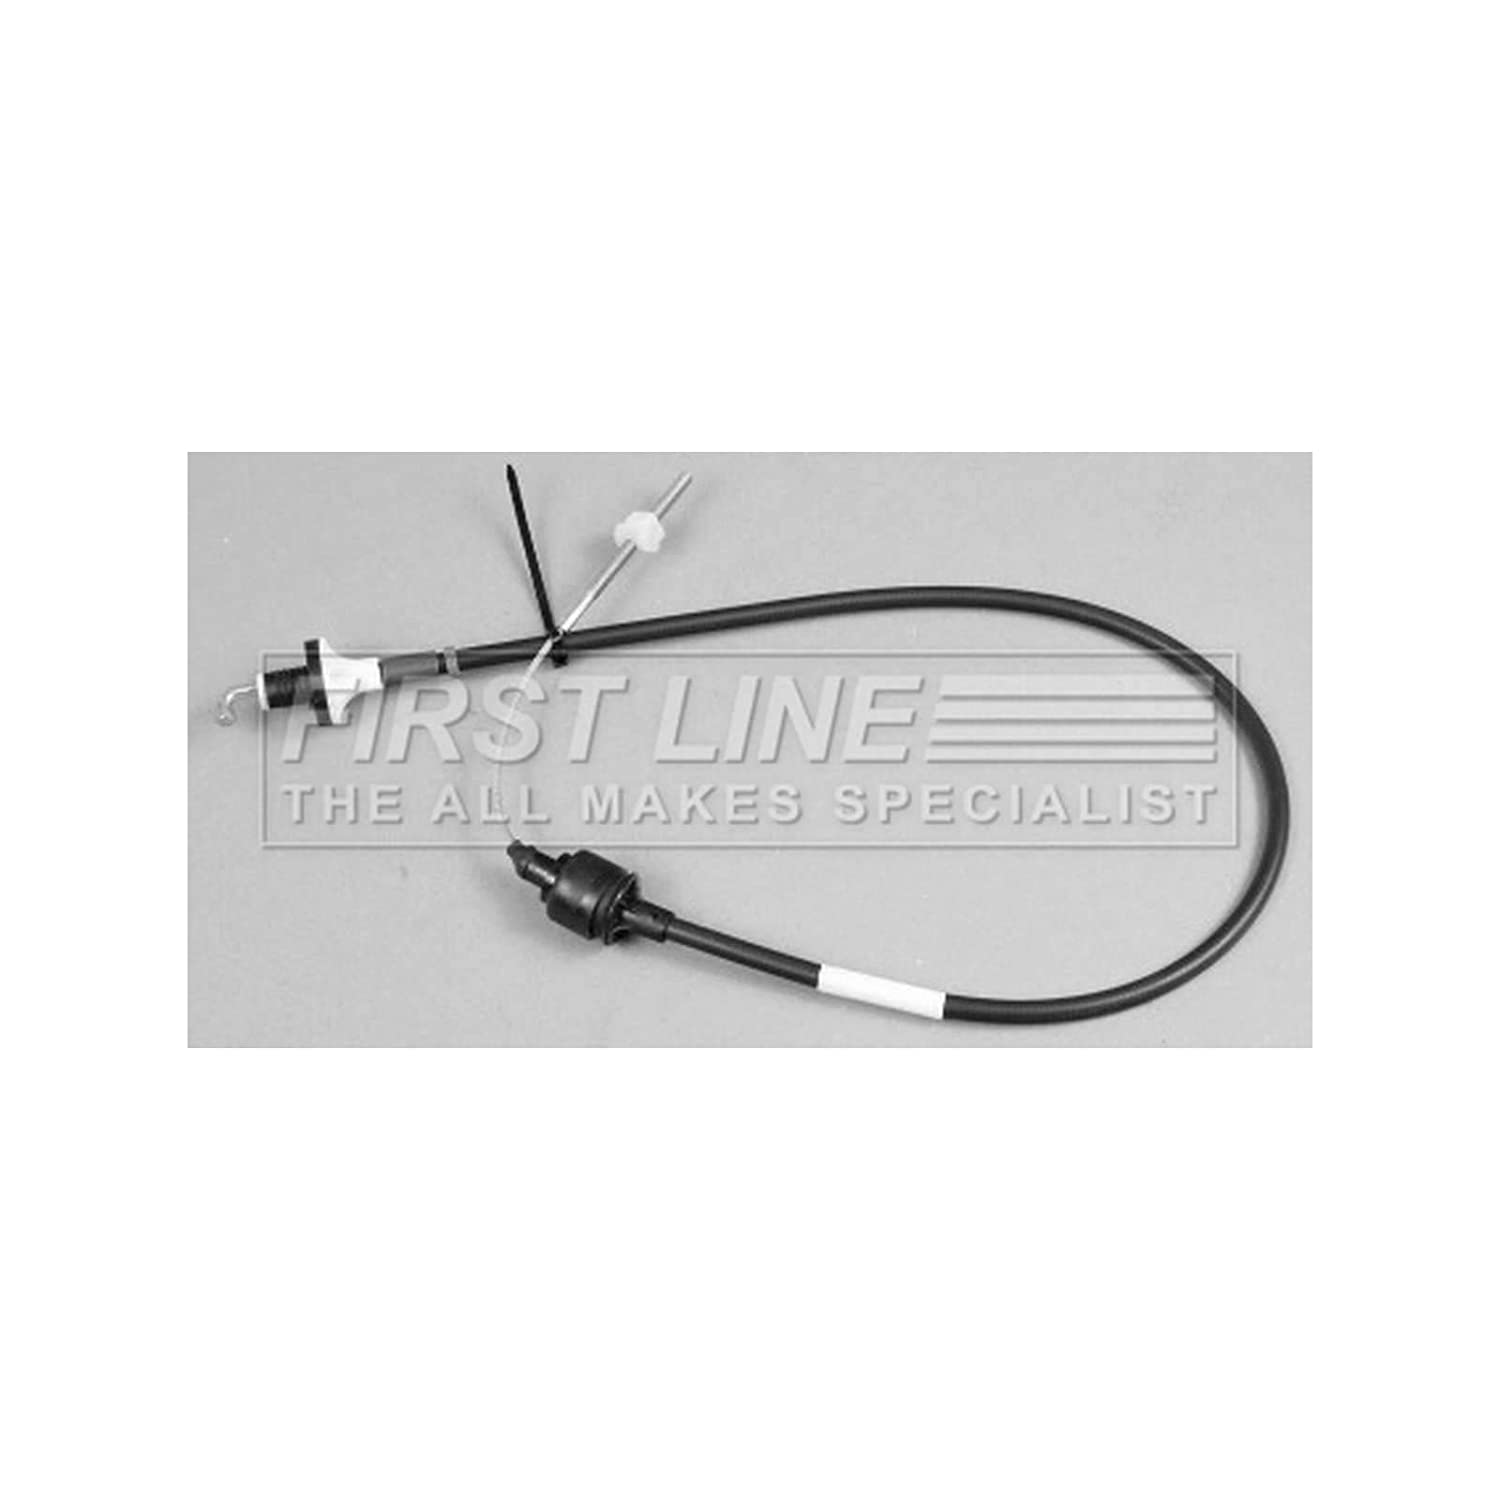 First Line FKC1469 Clutch Cable